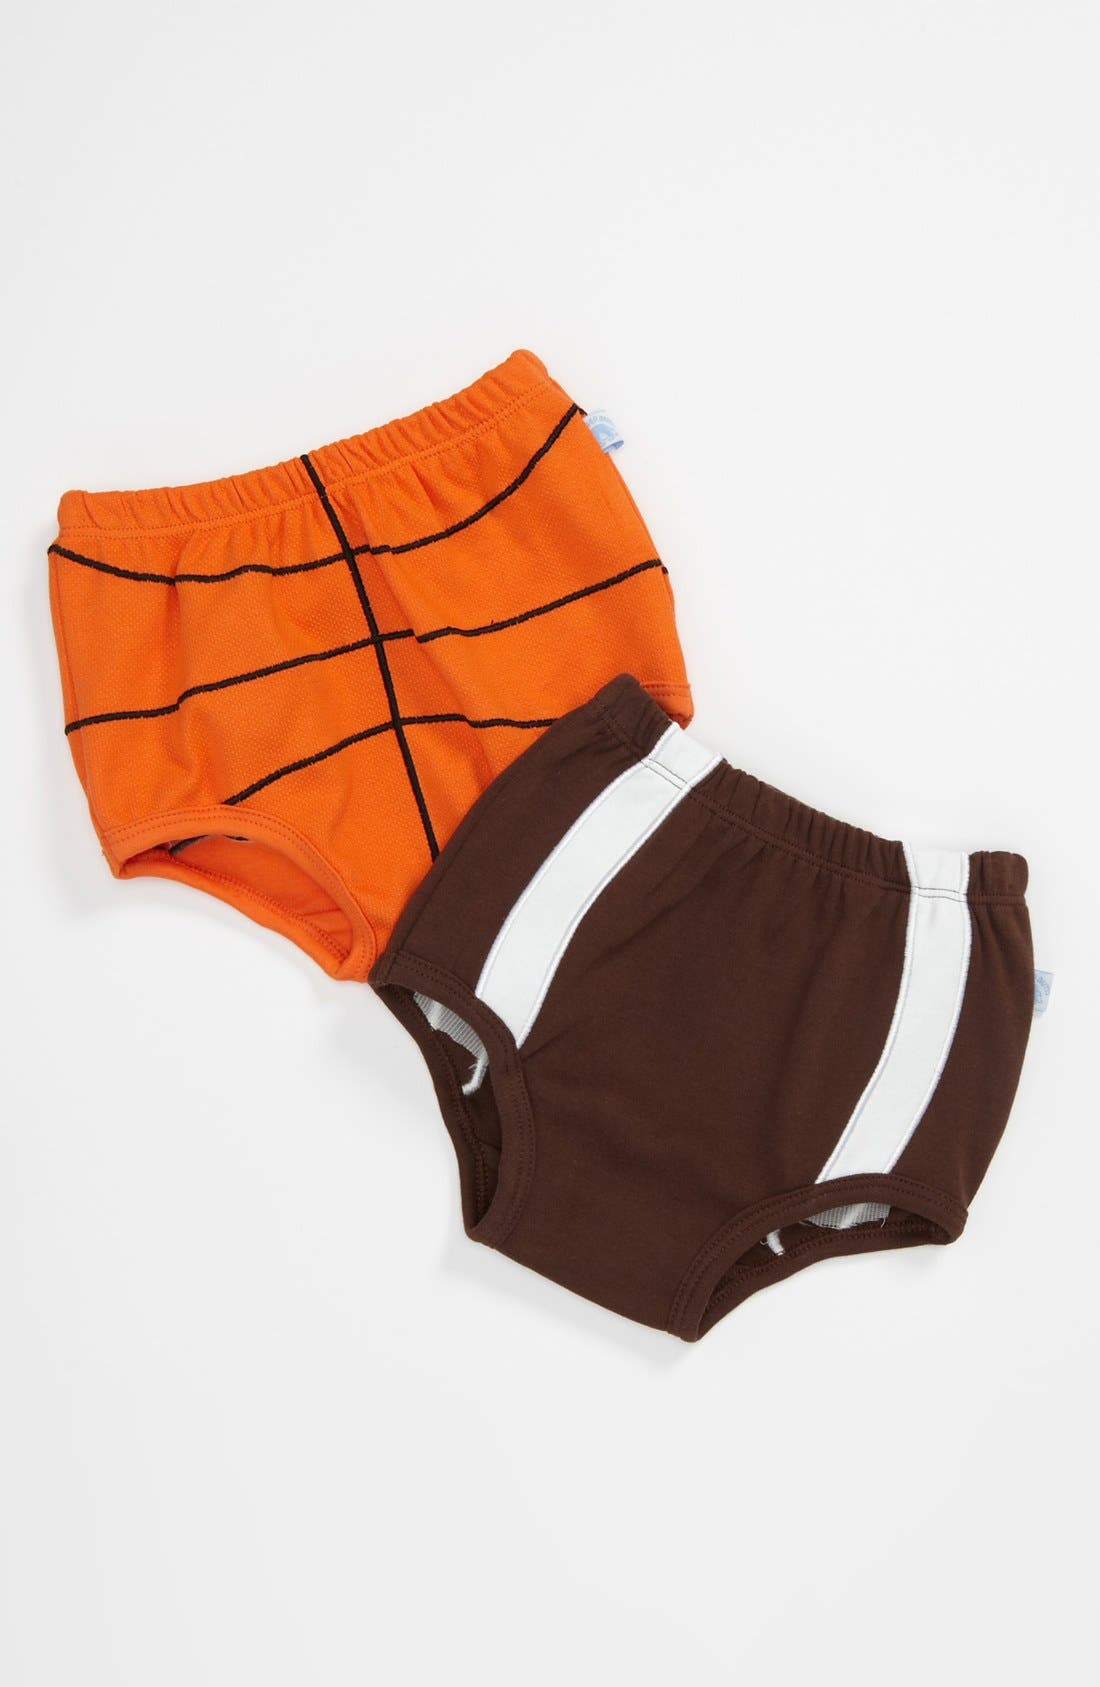 Alternate Image 1 Selected - RuggedButts 'Sports' Diaper Cover (Set of 2) (Baby)